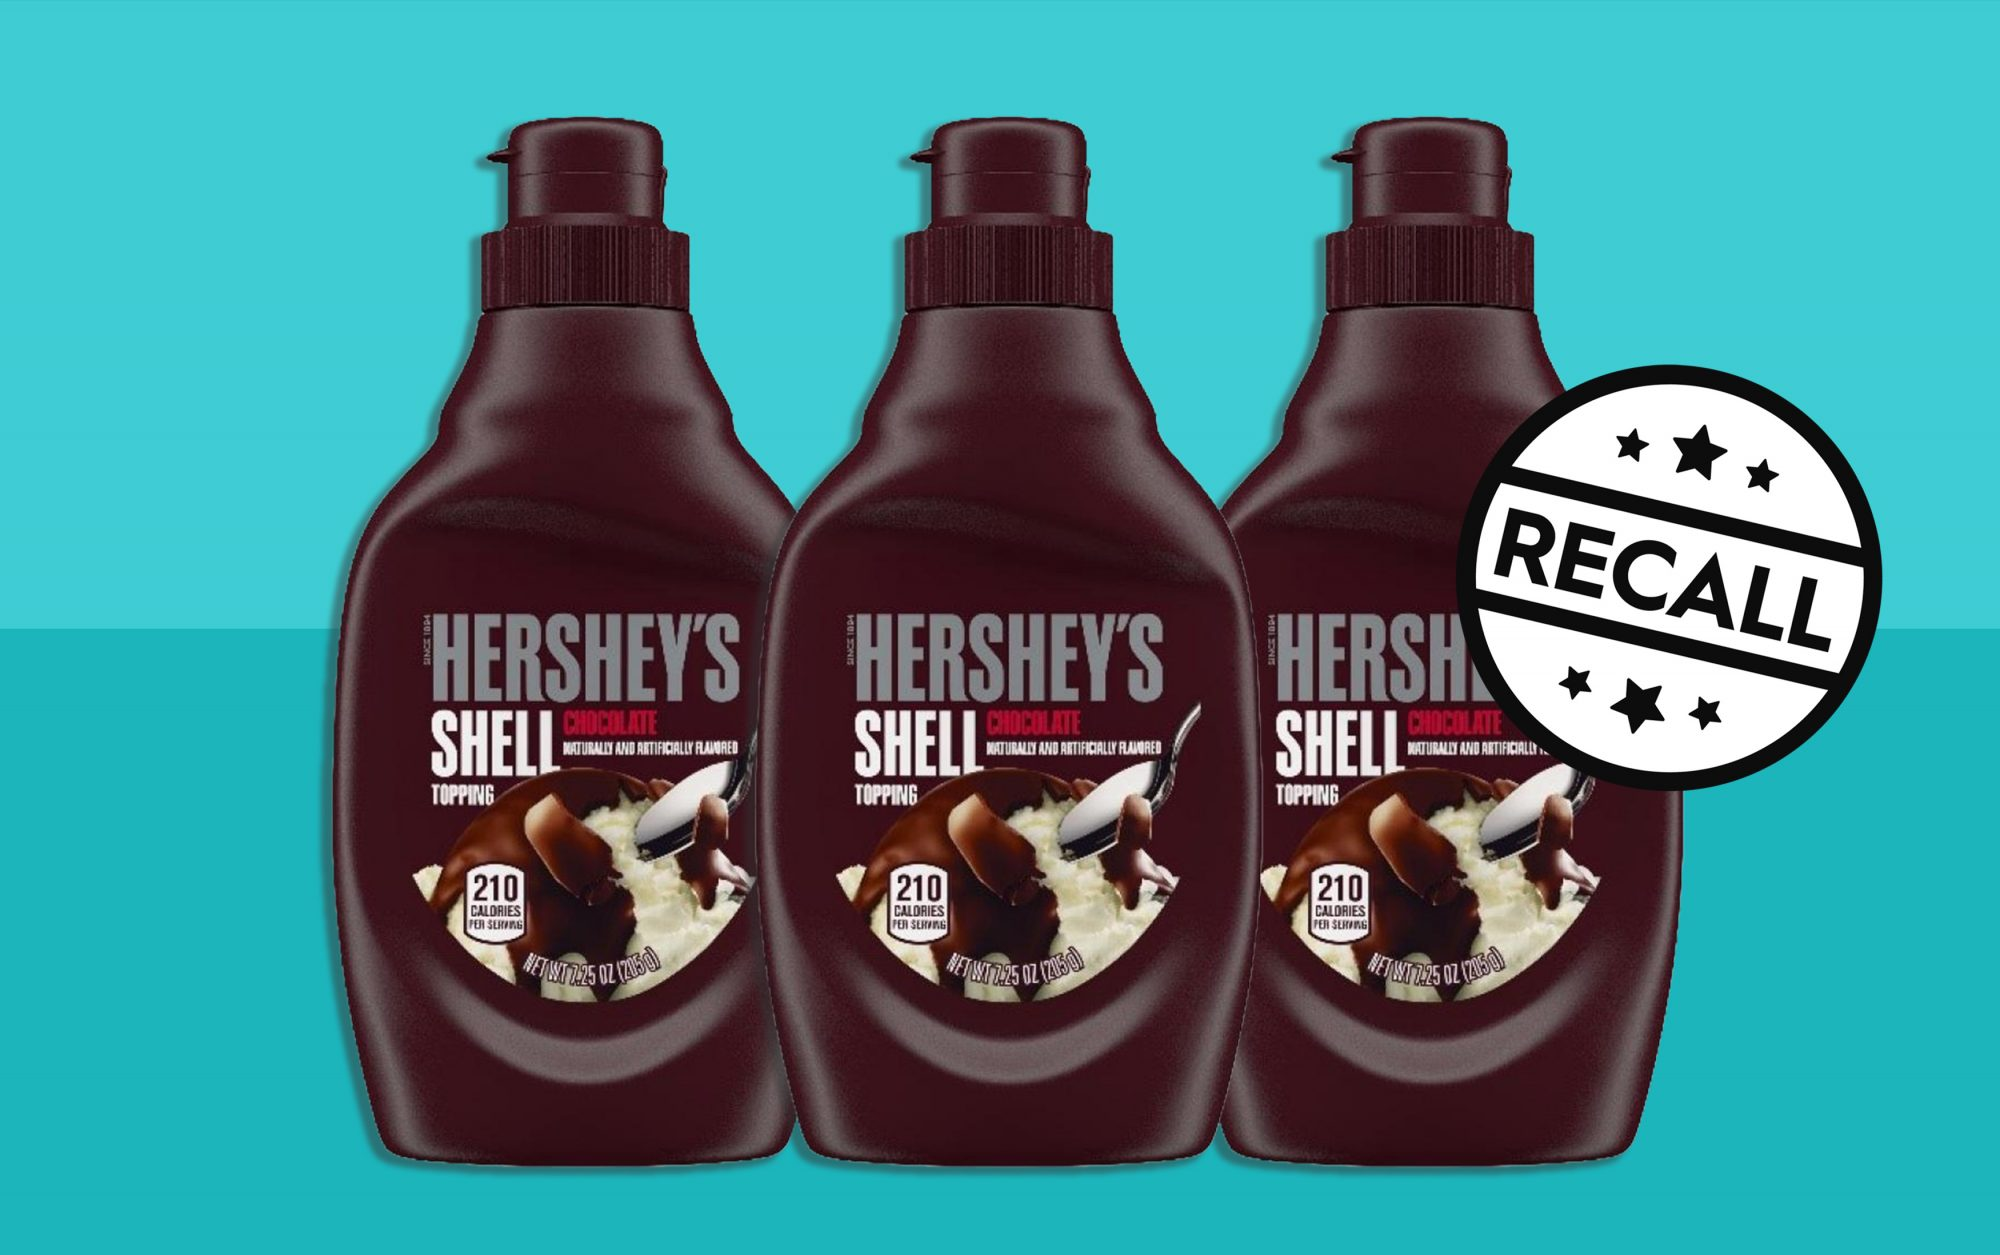 hershey's shell topping on turquoise background with recall stamp